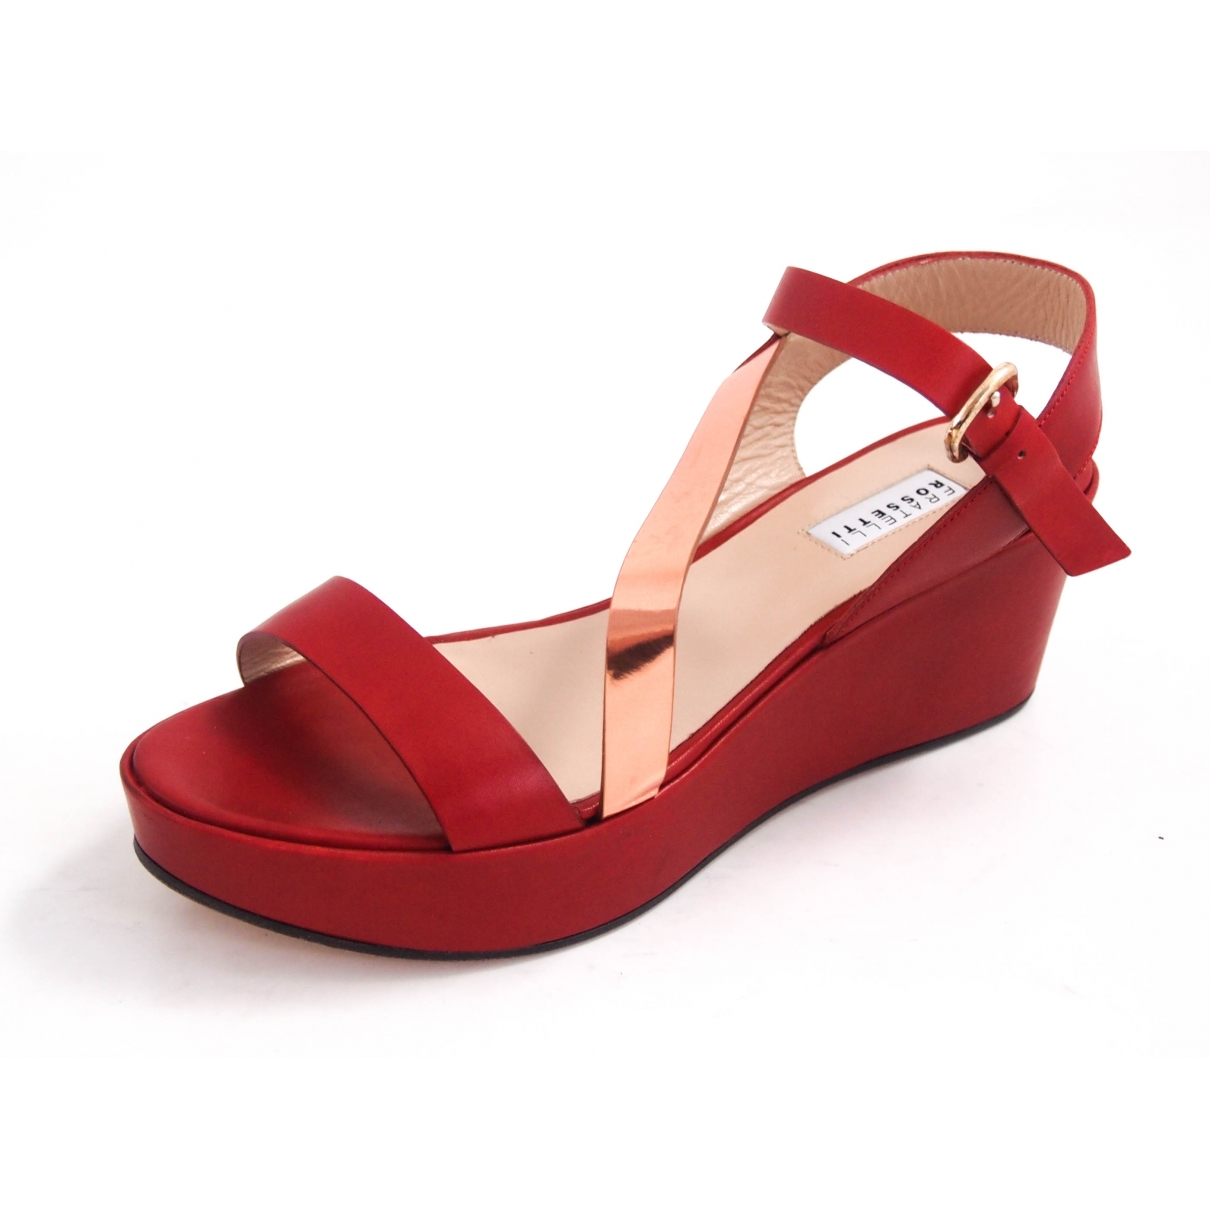 Fratelli Rossetti \N Red Leather Sandals for Women 39 EU